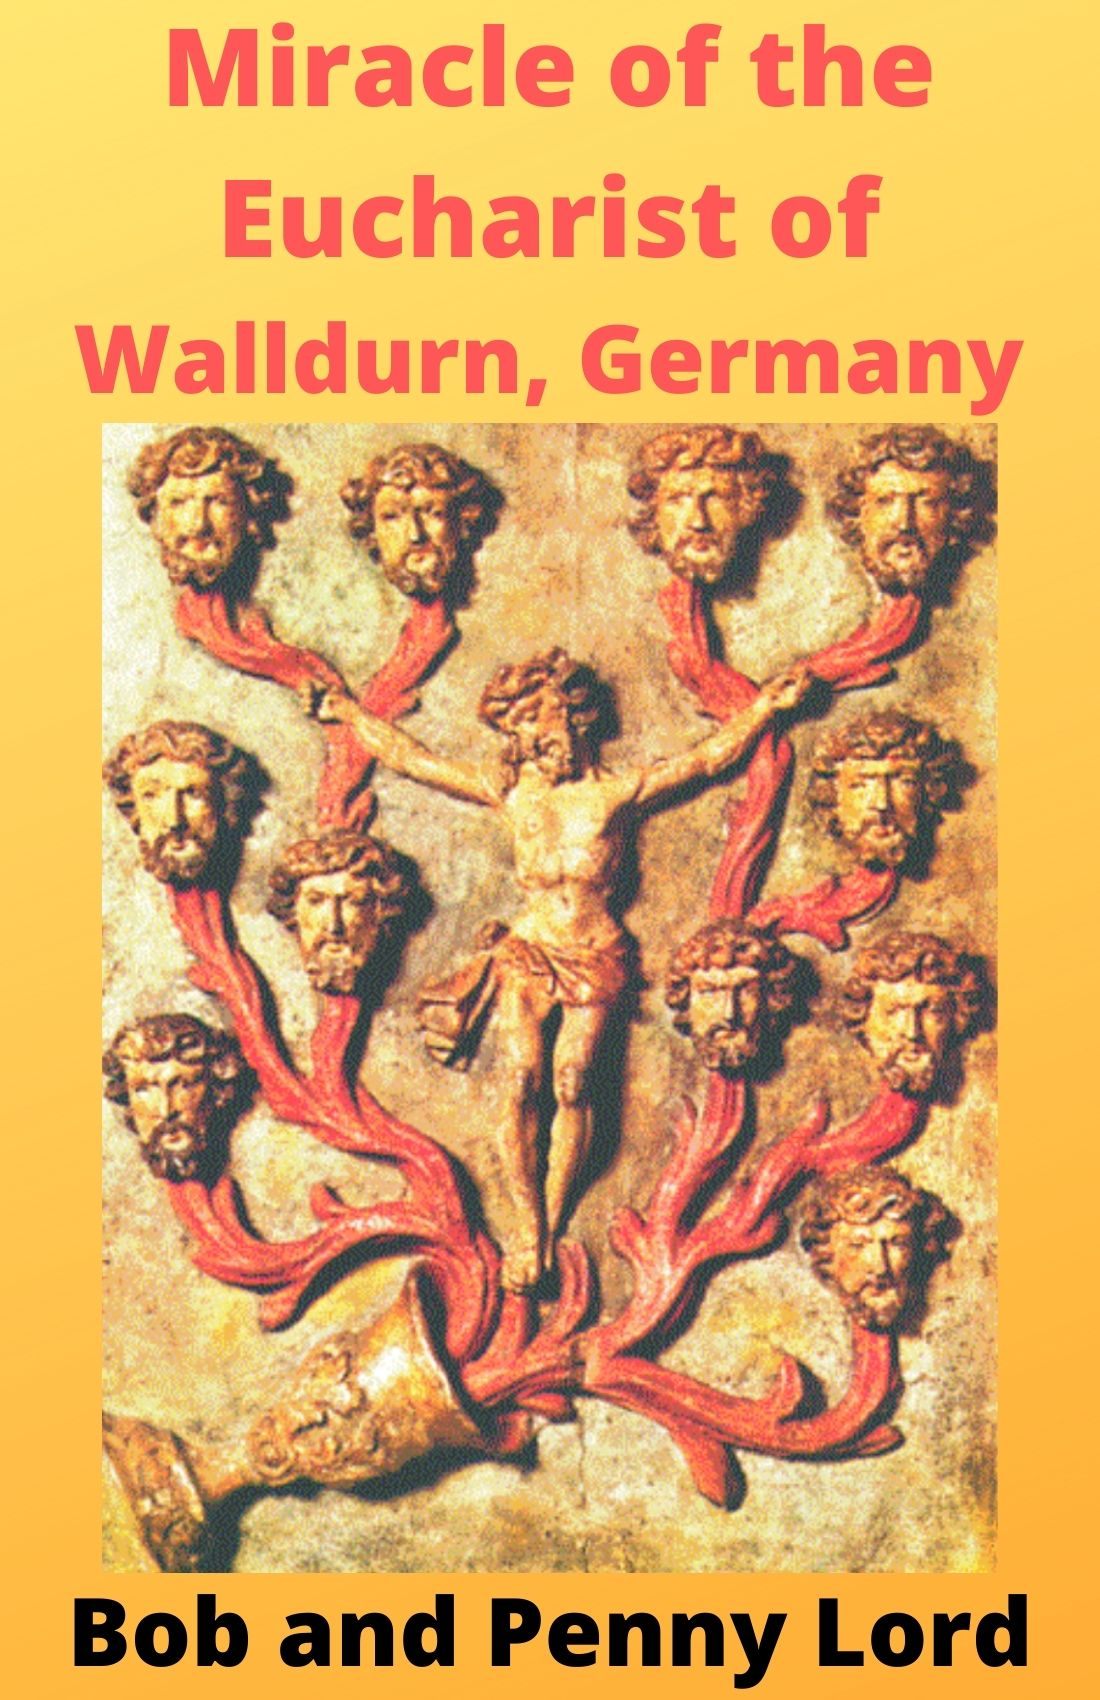 Miracle of the Eucharist of Walldurn, Germany  DVD - Bob and Penny Lord